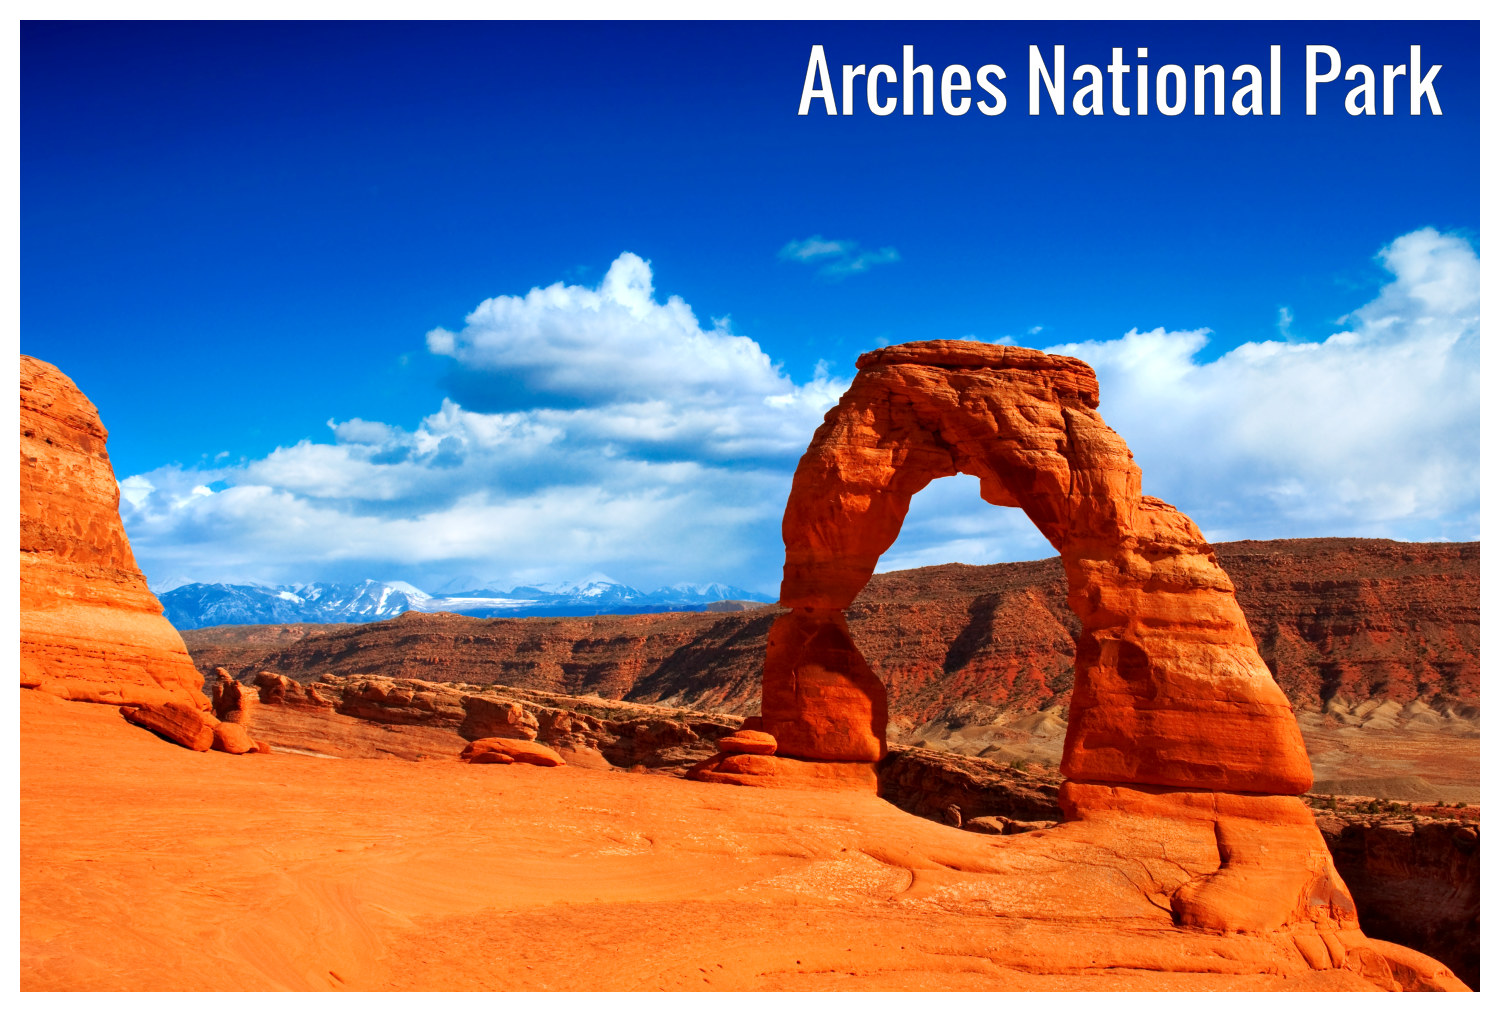 Arches National Park Ut Detailed Climate Information And